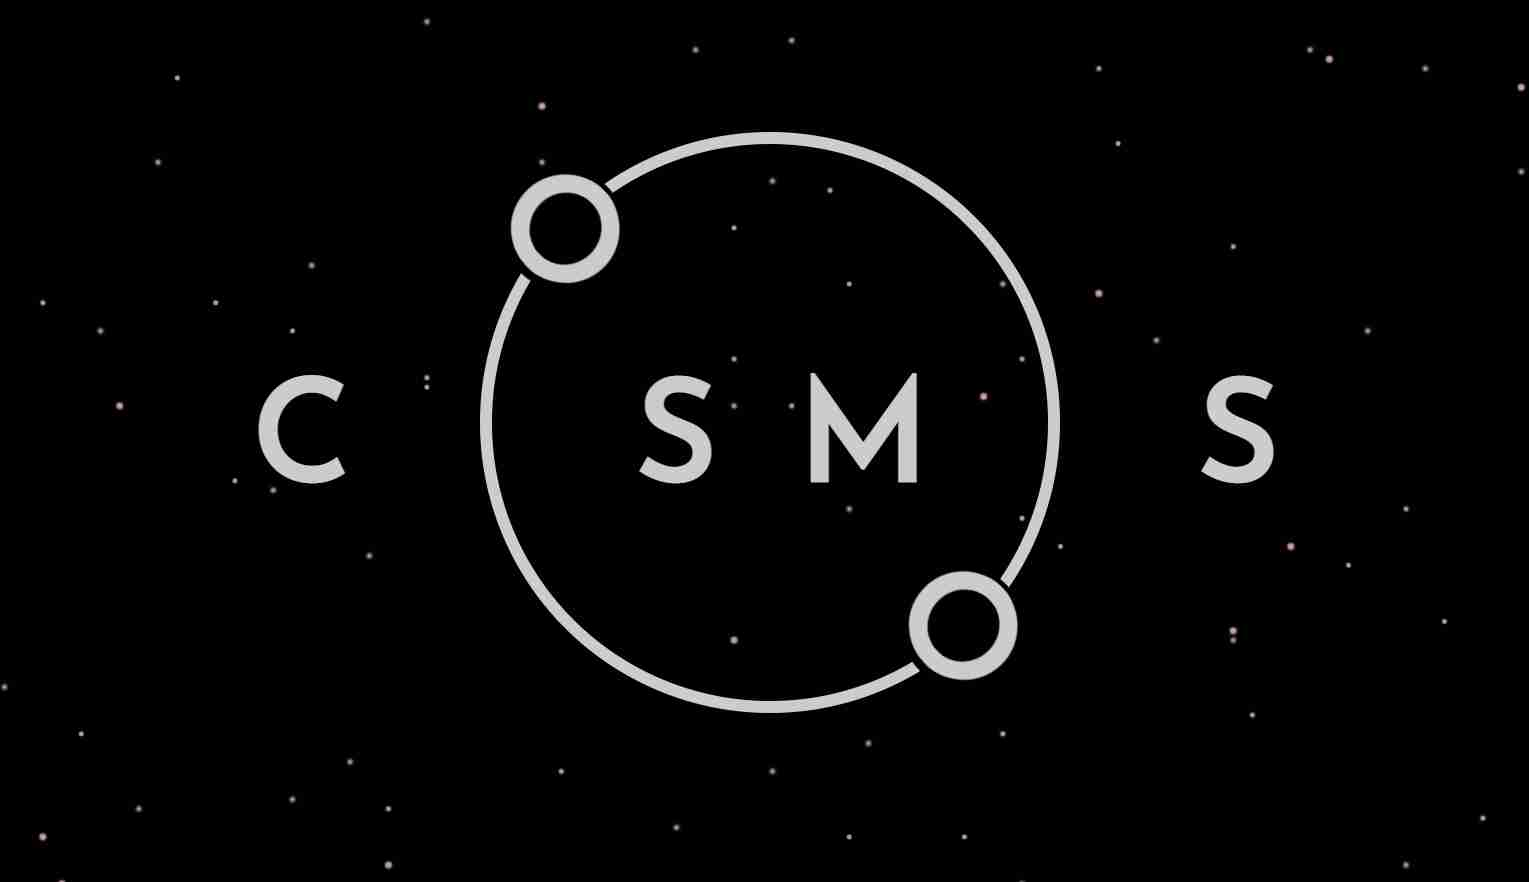 COSMOS with html and css